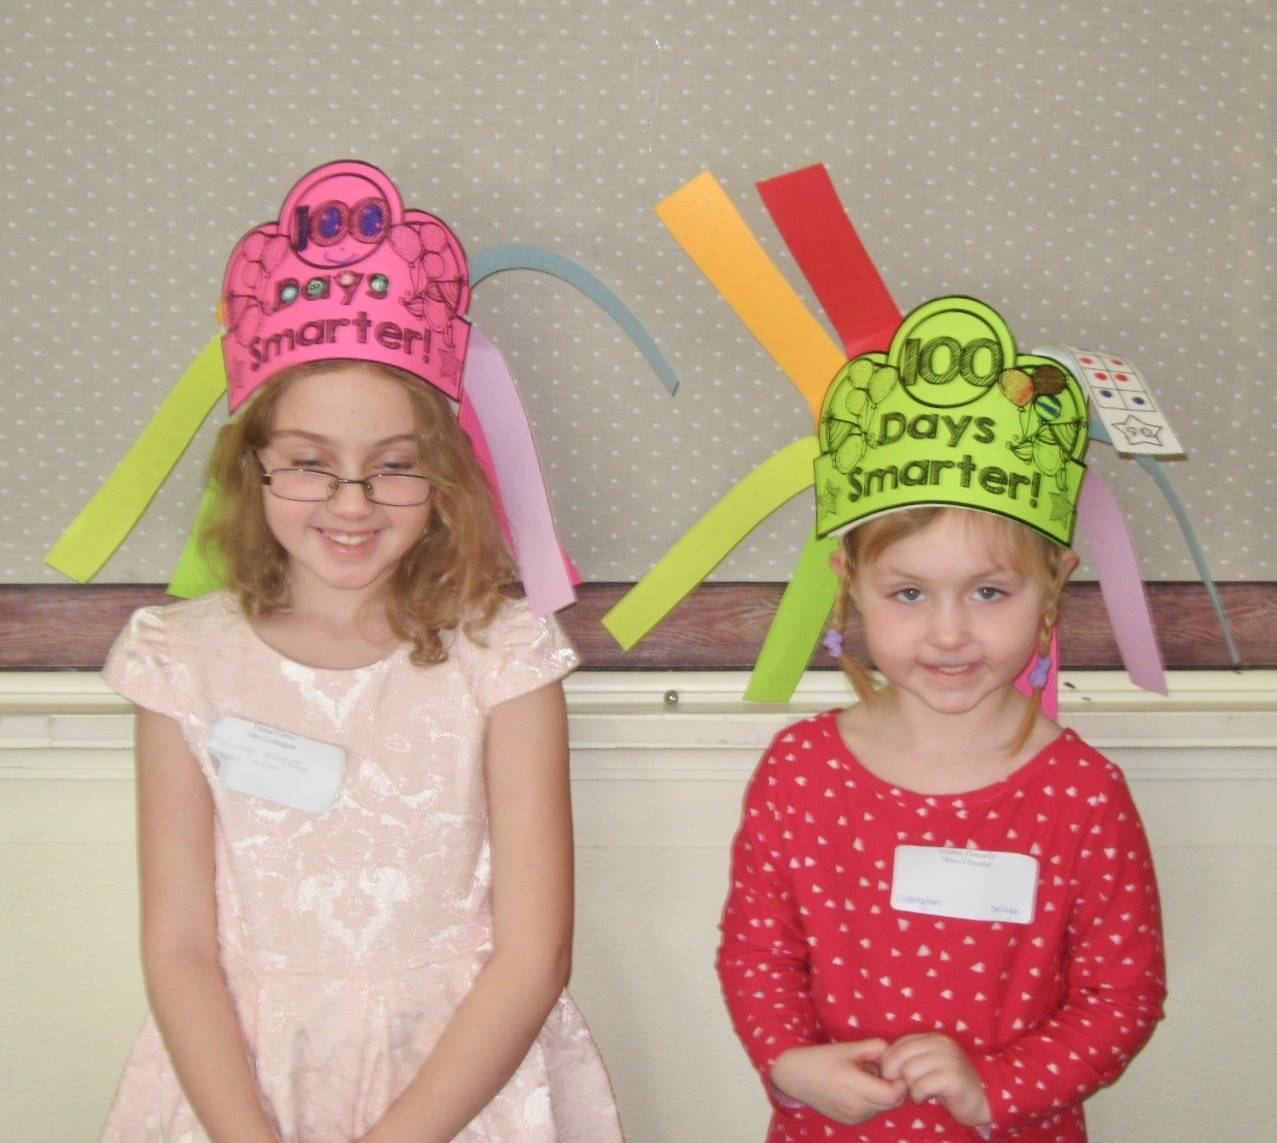 2 students with 100 days smarter hats.